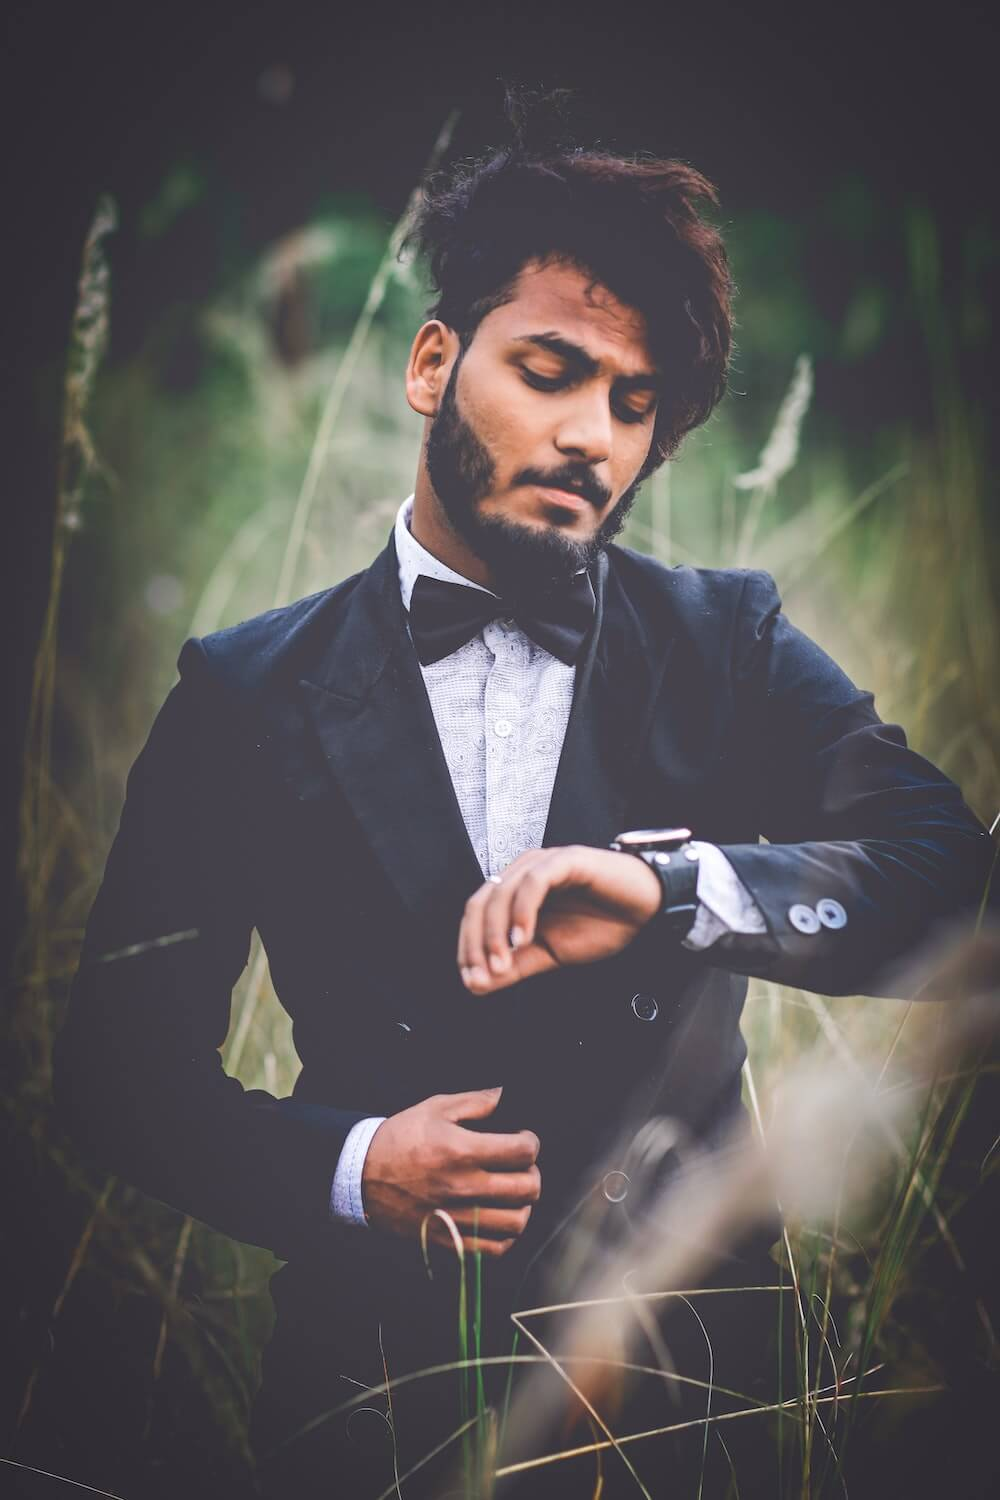 Man wearing suit looking at watch